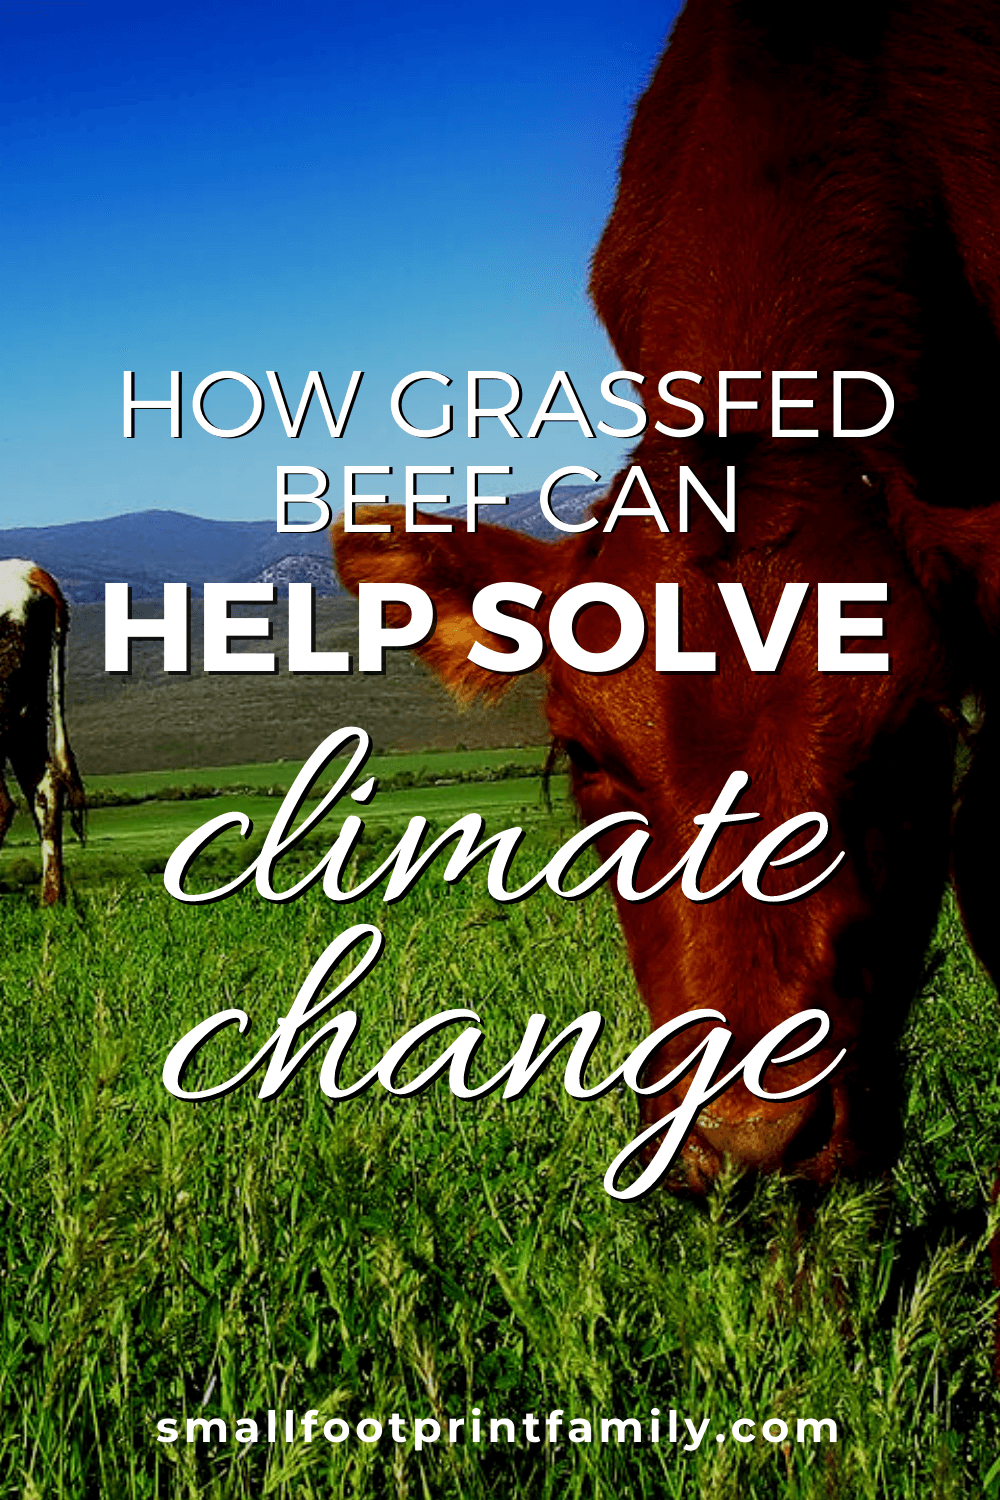 Scientists and ranchers alike see managed grazing as the best solution to desertification, air and water pollution, and even climate change. Here's why.#greenliving #ecofriendly #sustainability #gogreen #naturalliving #climatechange #grassfedbeef #holisticgrazing #sustainableagriculture